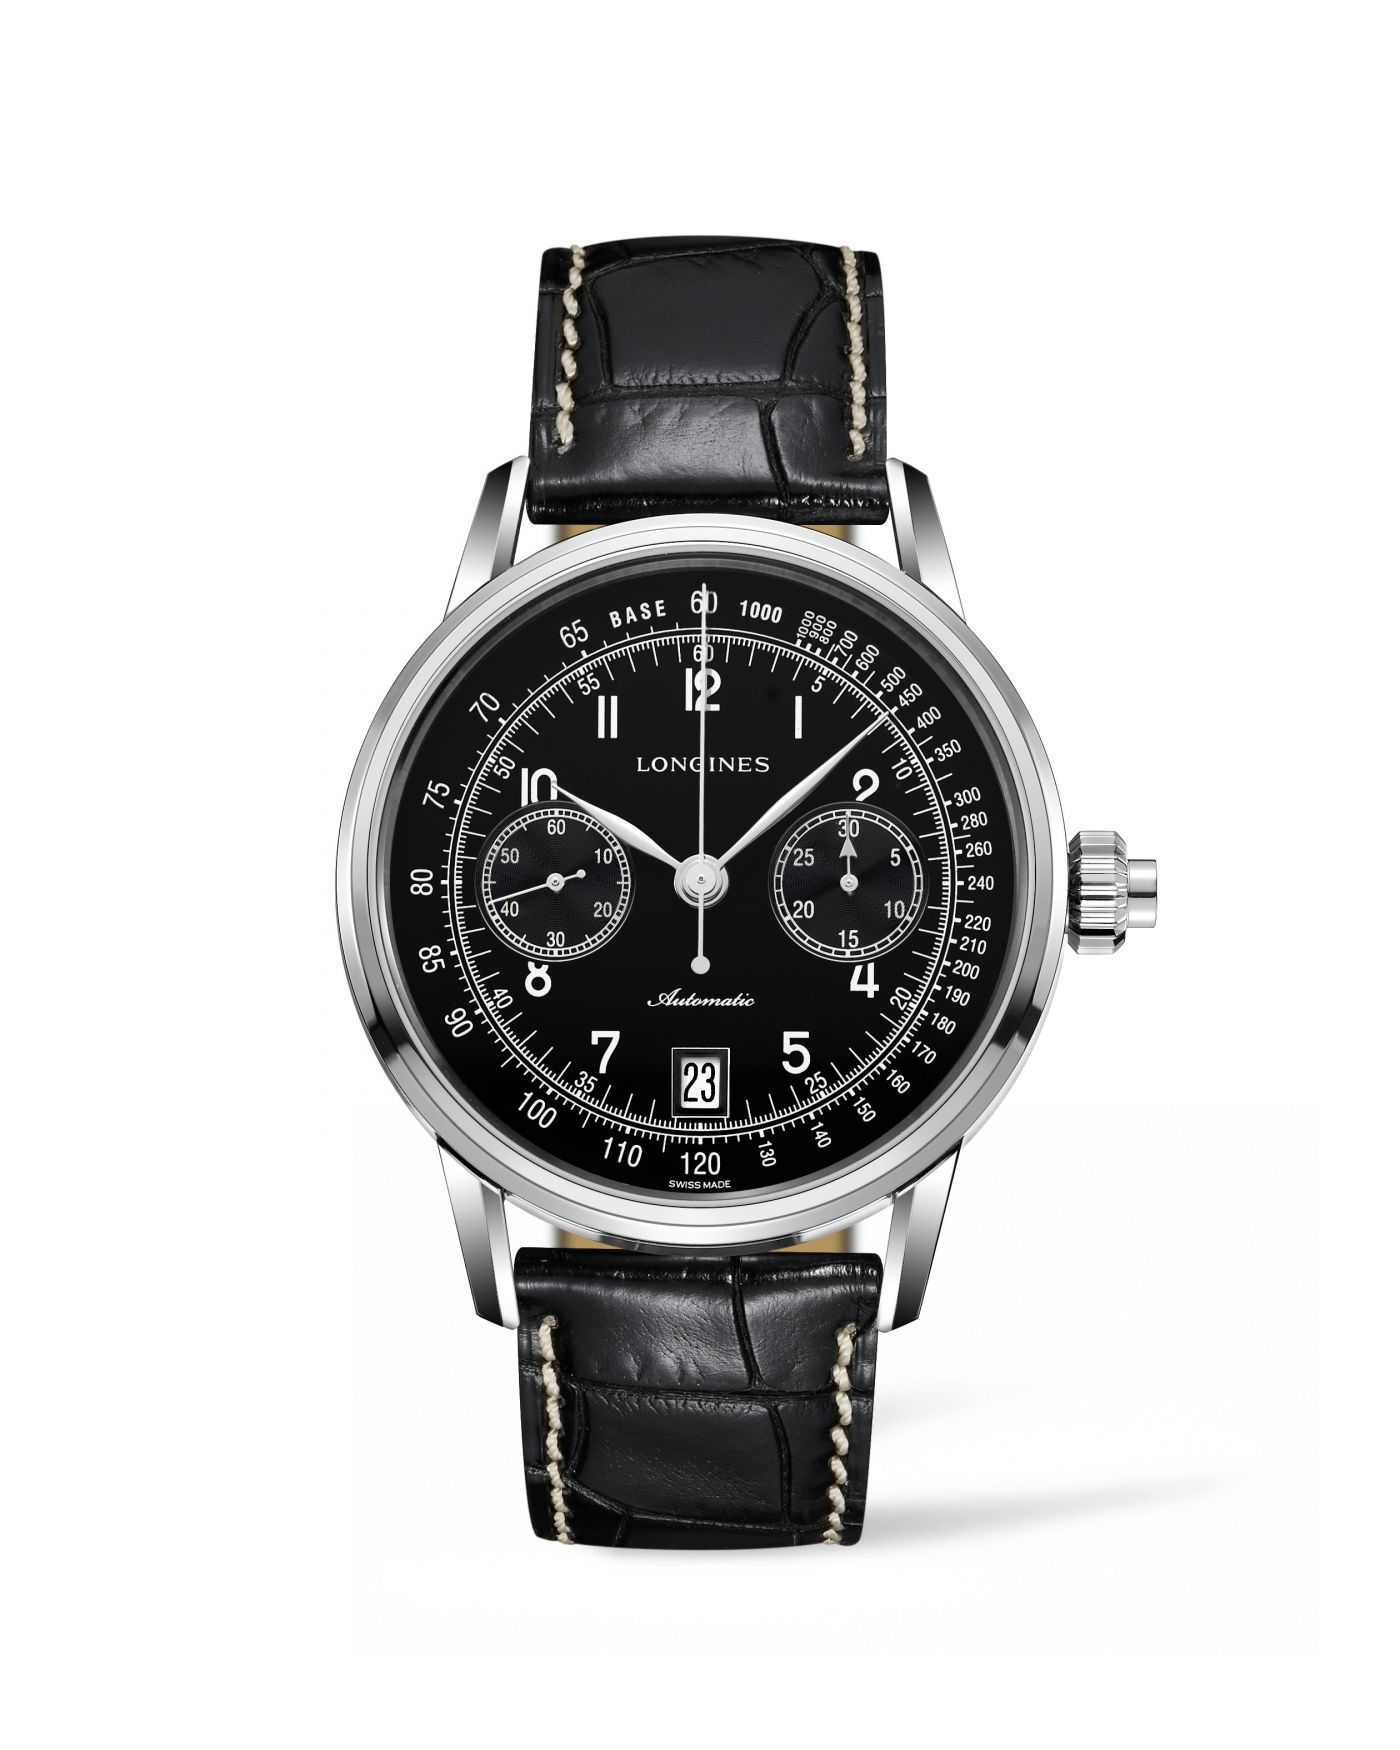 Longines The Longines Column-Wheel Single Push-Piece Chronograph  Watch 1